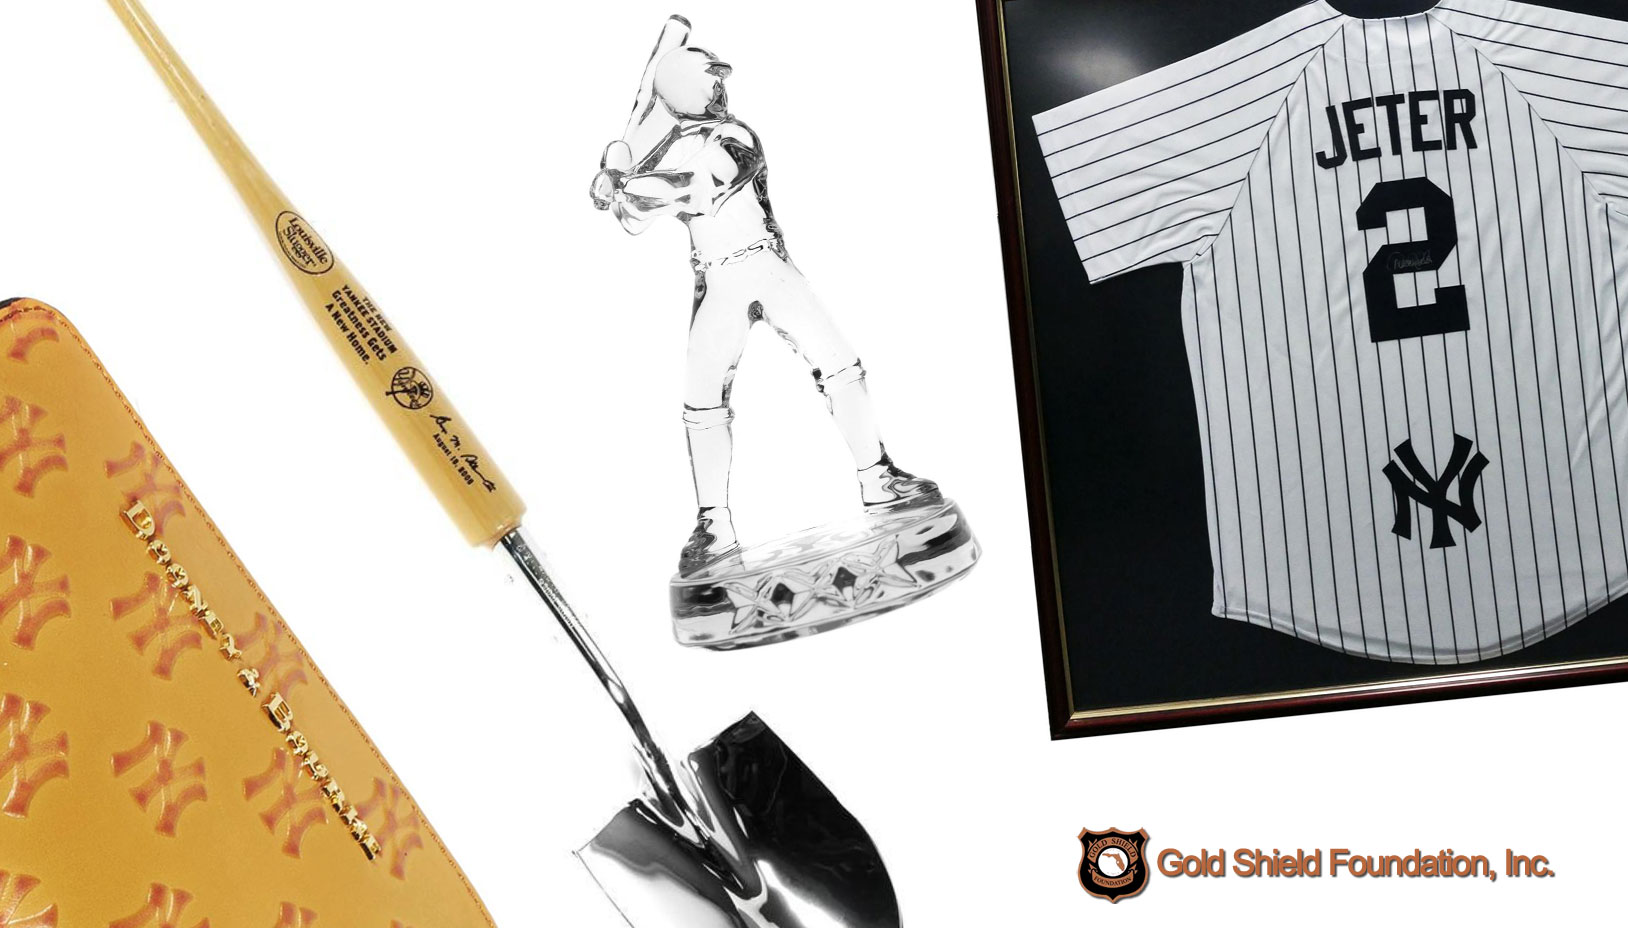 Items to Benefit Gold Shield Foundation